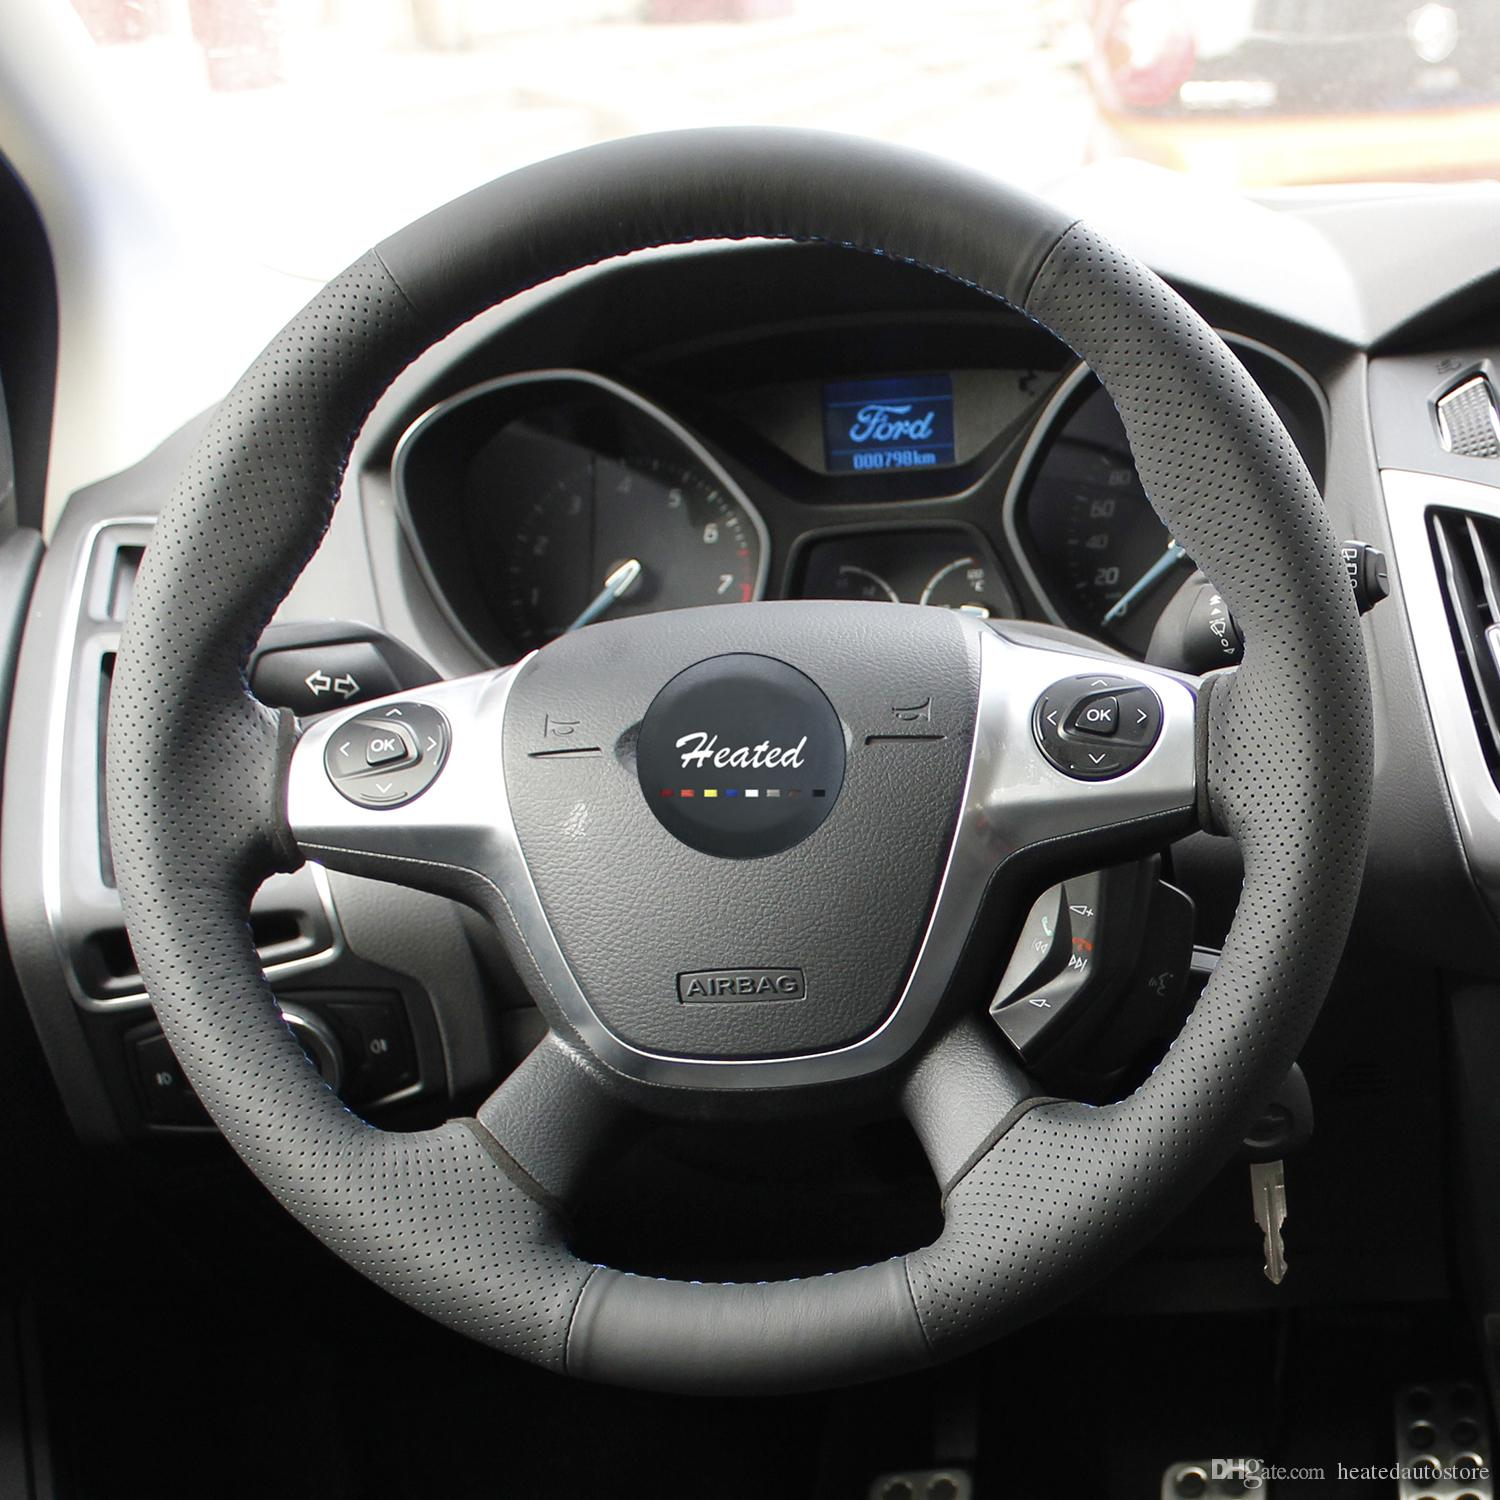 Nappa Leather Auto steering wheel cover for Ford Focus 3 2012-2014 KUGA Escape 2013-2016 car styling braid on the steering wheel